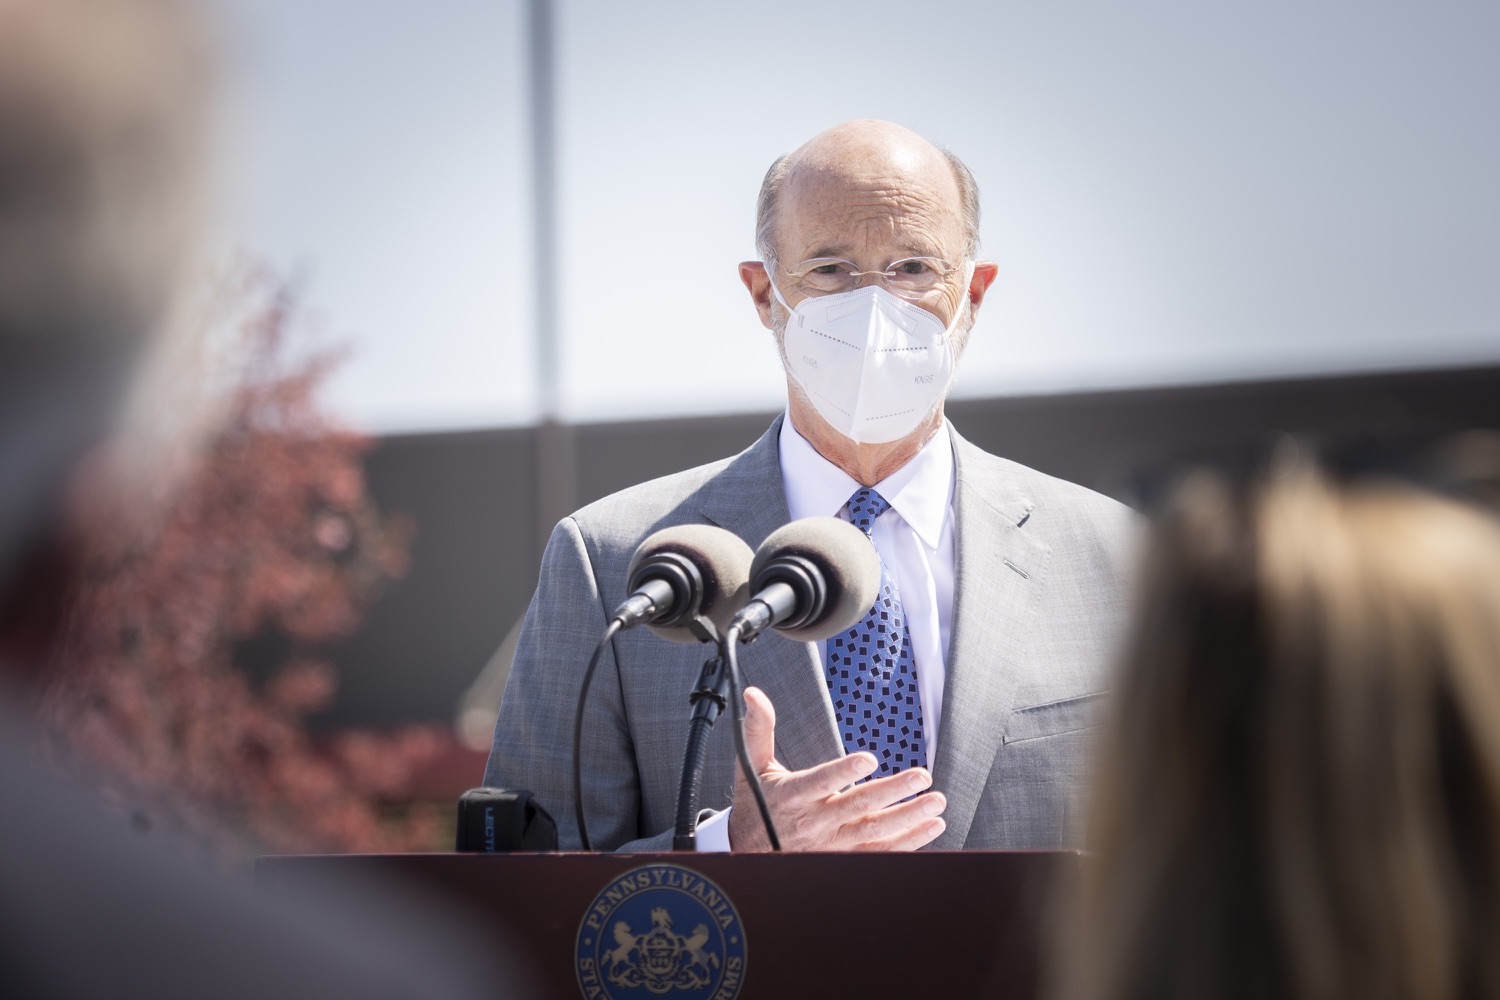 """<a href=""""https://filesource.wostreaming.net/commonwealthofpa/photo/18654_gov_vaccineeligibility_dz_013.jpg"""" target=""""_blank"""">⇣Download Photo<br></a>Pennsylvania Governor Tom Wolf speaking to the press.  Gov. Tom Wolf visited Weis Markets in Enola, Cumberland County, to recognize the heroic efforts of Pennsylvania's grocery store workers, who are now eligible for the COVID-19 vaccine.  The governor expressed his gratitude to Pennsylvania's 180,000 grocery store workers, who suddenly became frontline workers as the state took critical steps to mitigate the spread of COVID-19. Grocery stores were deemed life-sustaining businesses, and these employees put their lives at risk to ensure their stores remained open to the public. APRIL 06, 2021 - ENOLA, PA.."""